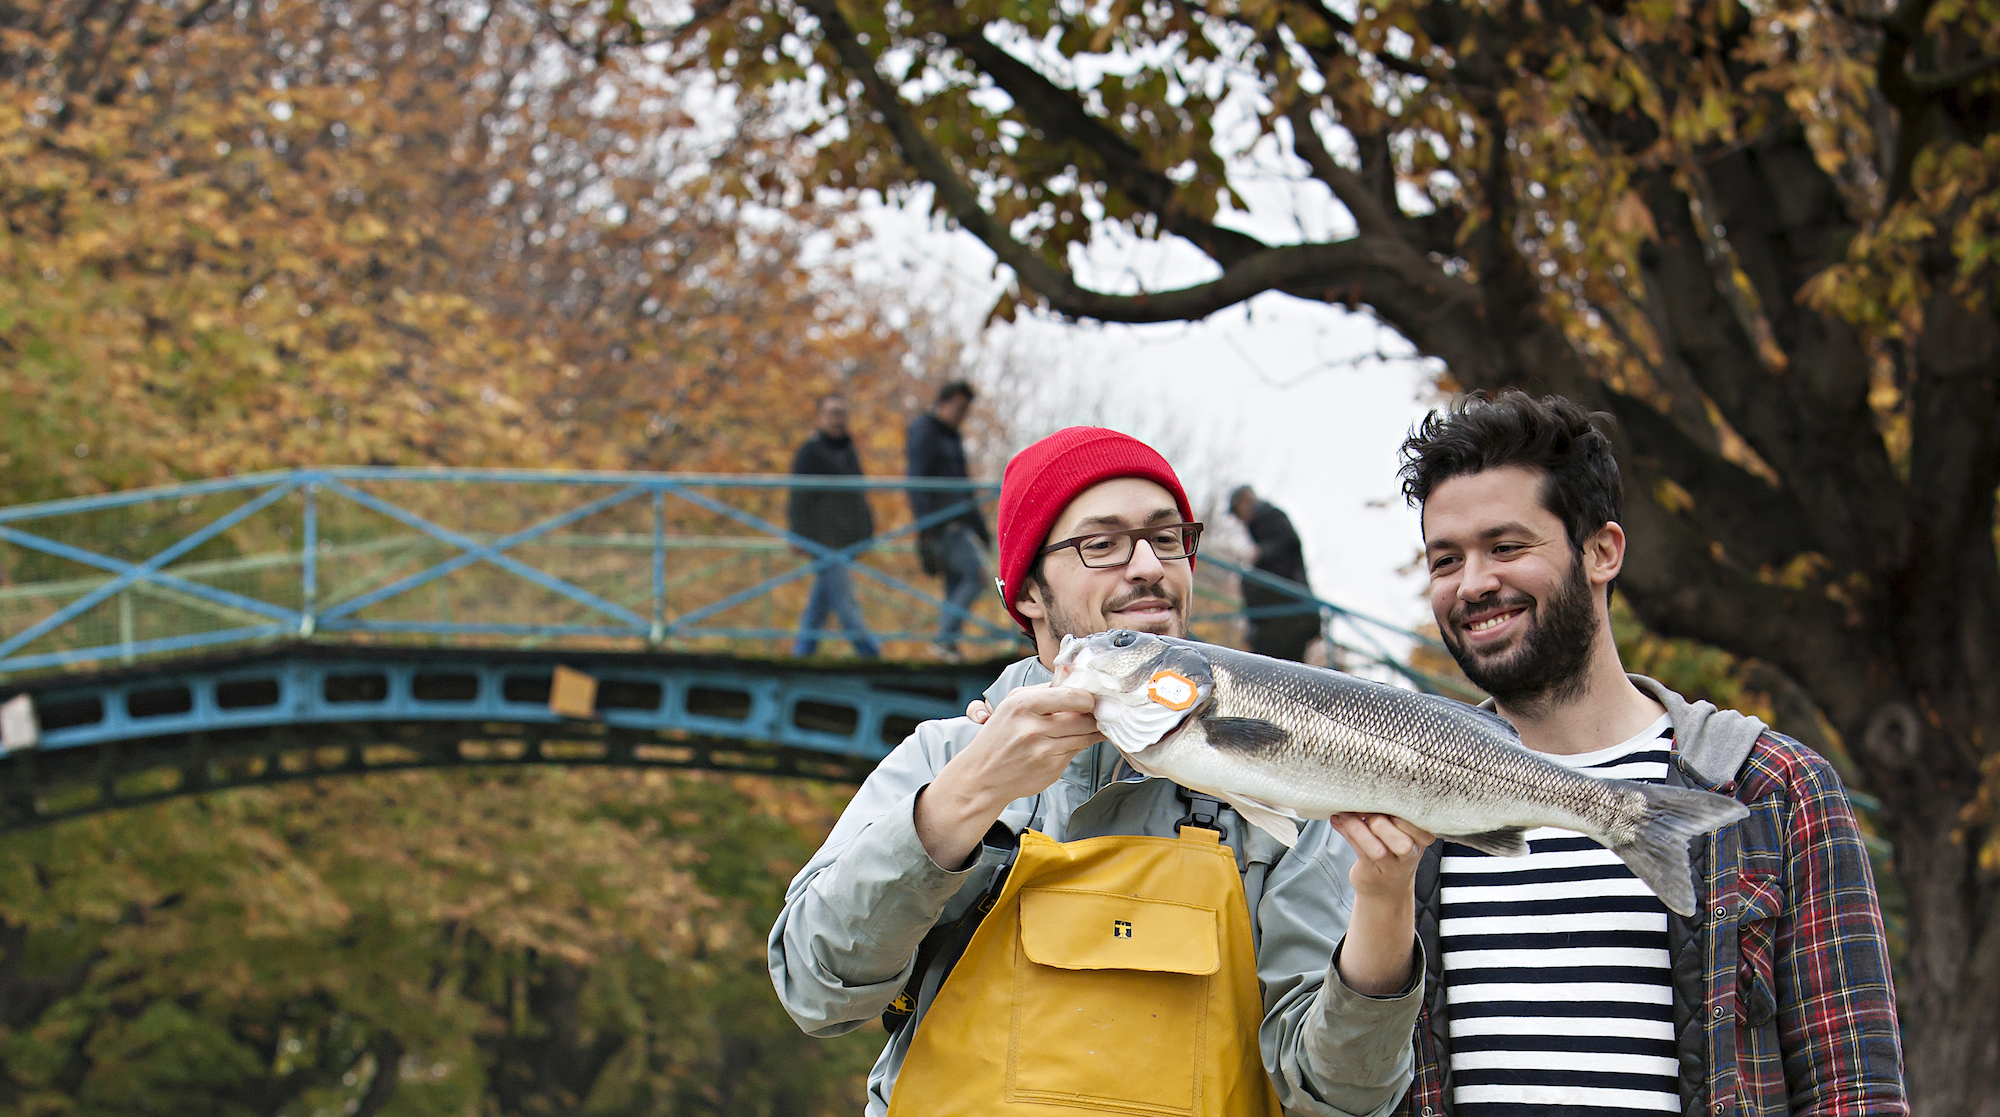 The founders of ethical French fish monger's Poiscaille, on the Canal Saint Martin in Paris, with a fish in hand.